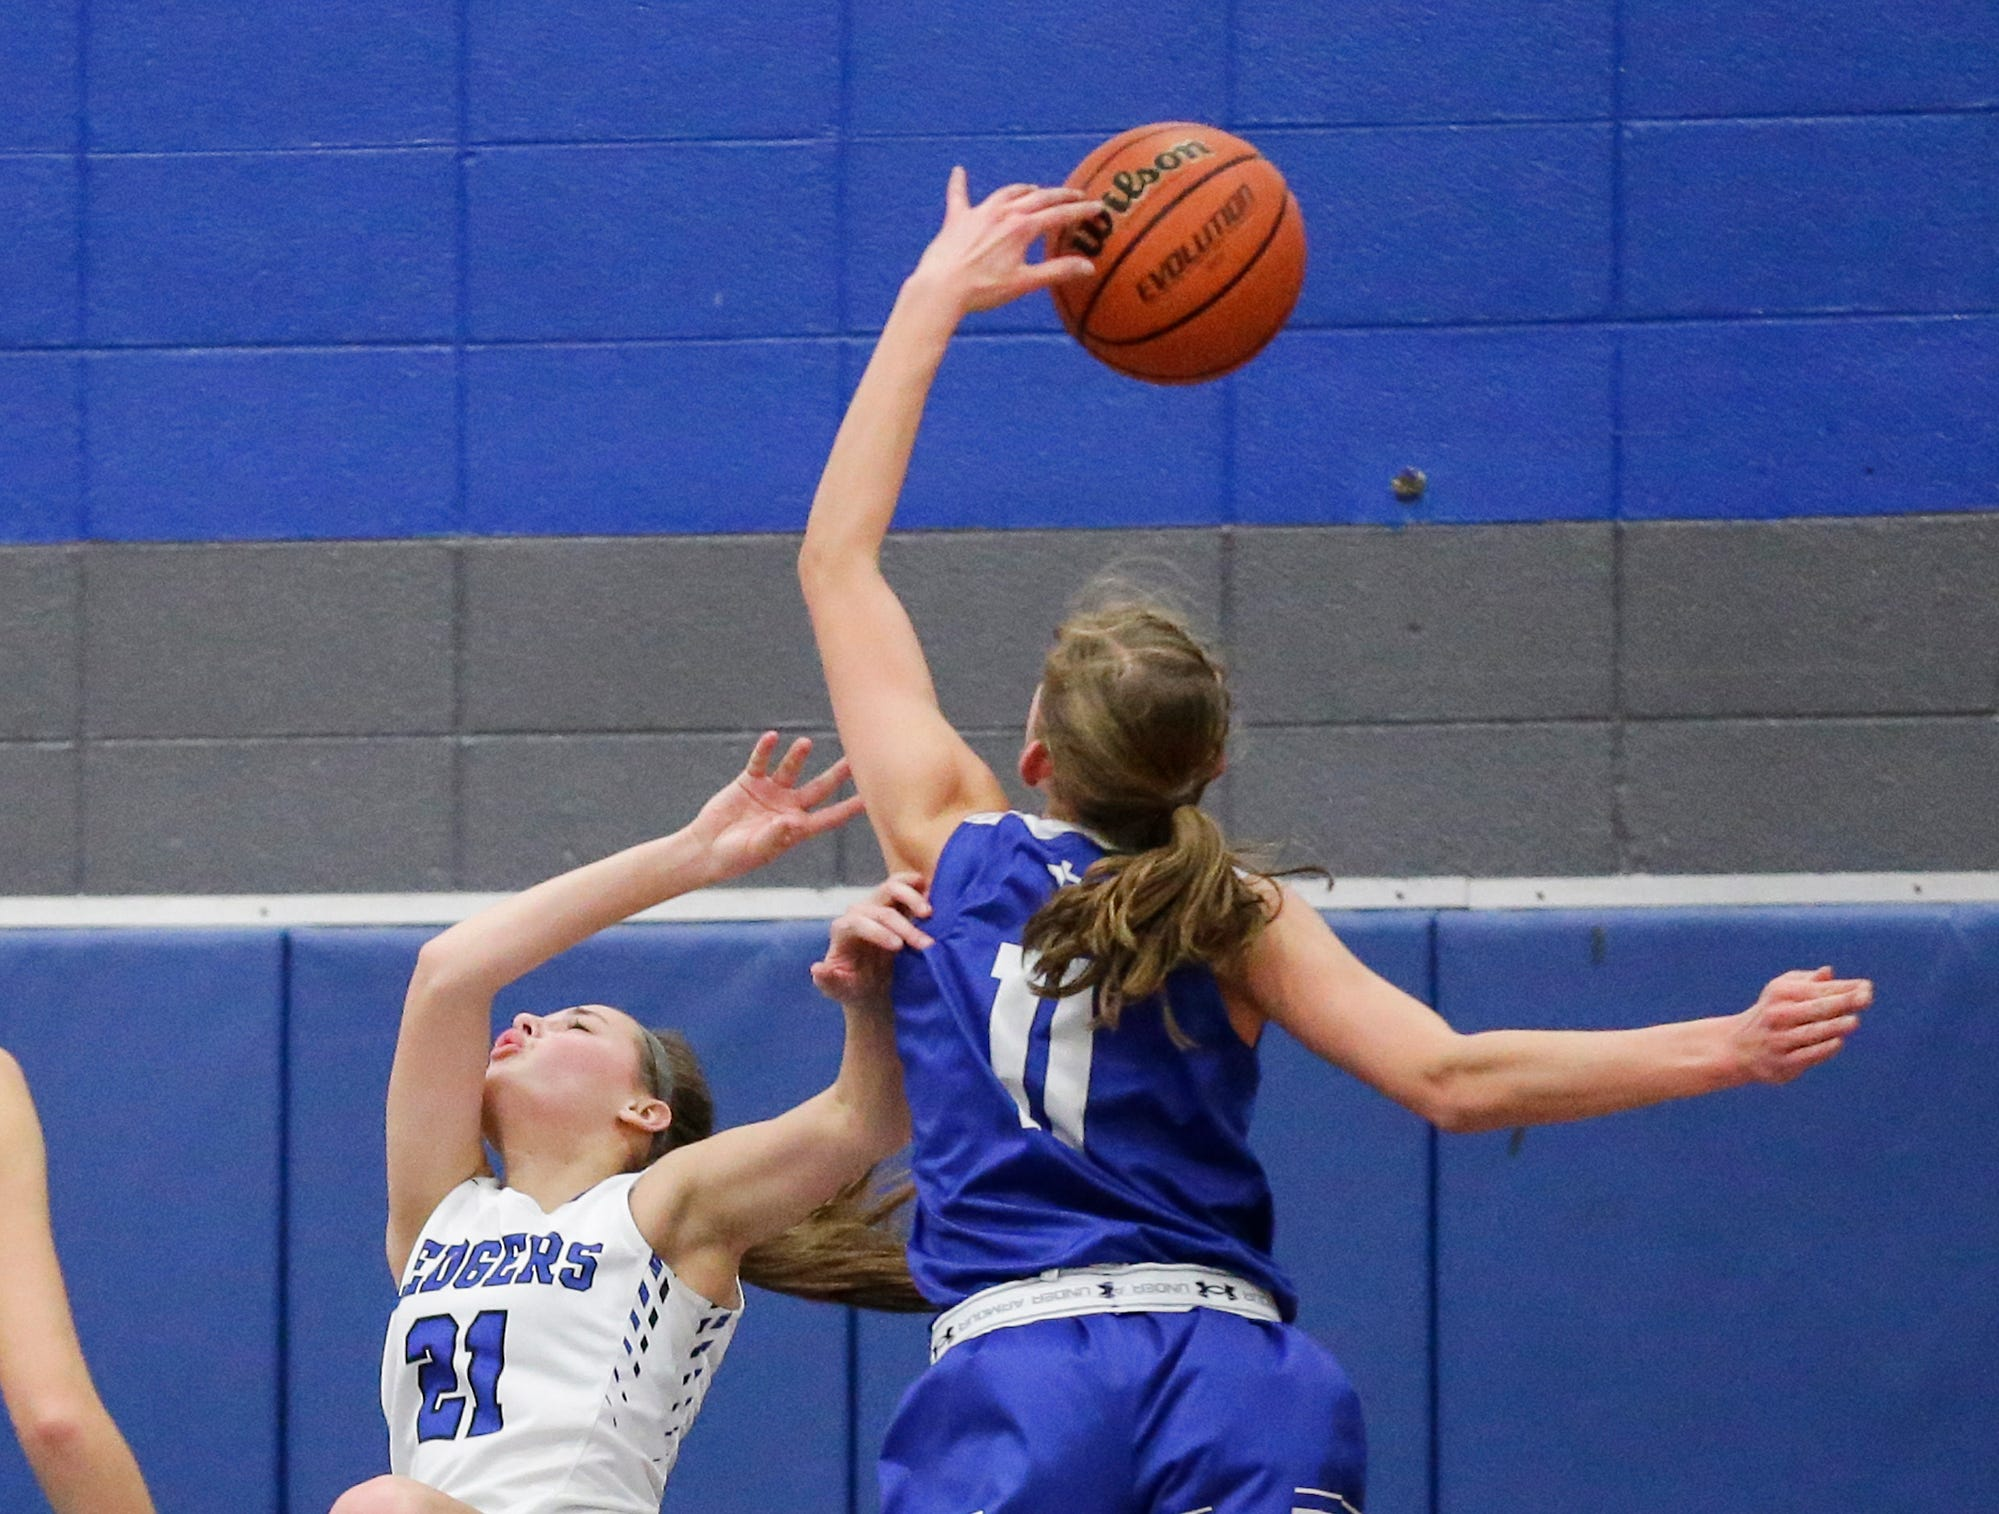 St. Mary's Springs Academy girls basketball's Jennifer Chatterton gets fouled by Winnebago Lutheran Academy's Alyssa Lorenz during their game Tuesday, December 18, 2018 in Fond du Lac. Winnebago Lutheran Academy won the game 58-54. Doug Raflik/USA TODAY NETWORK-Wisconsin